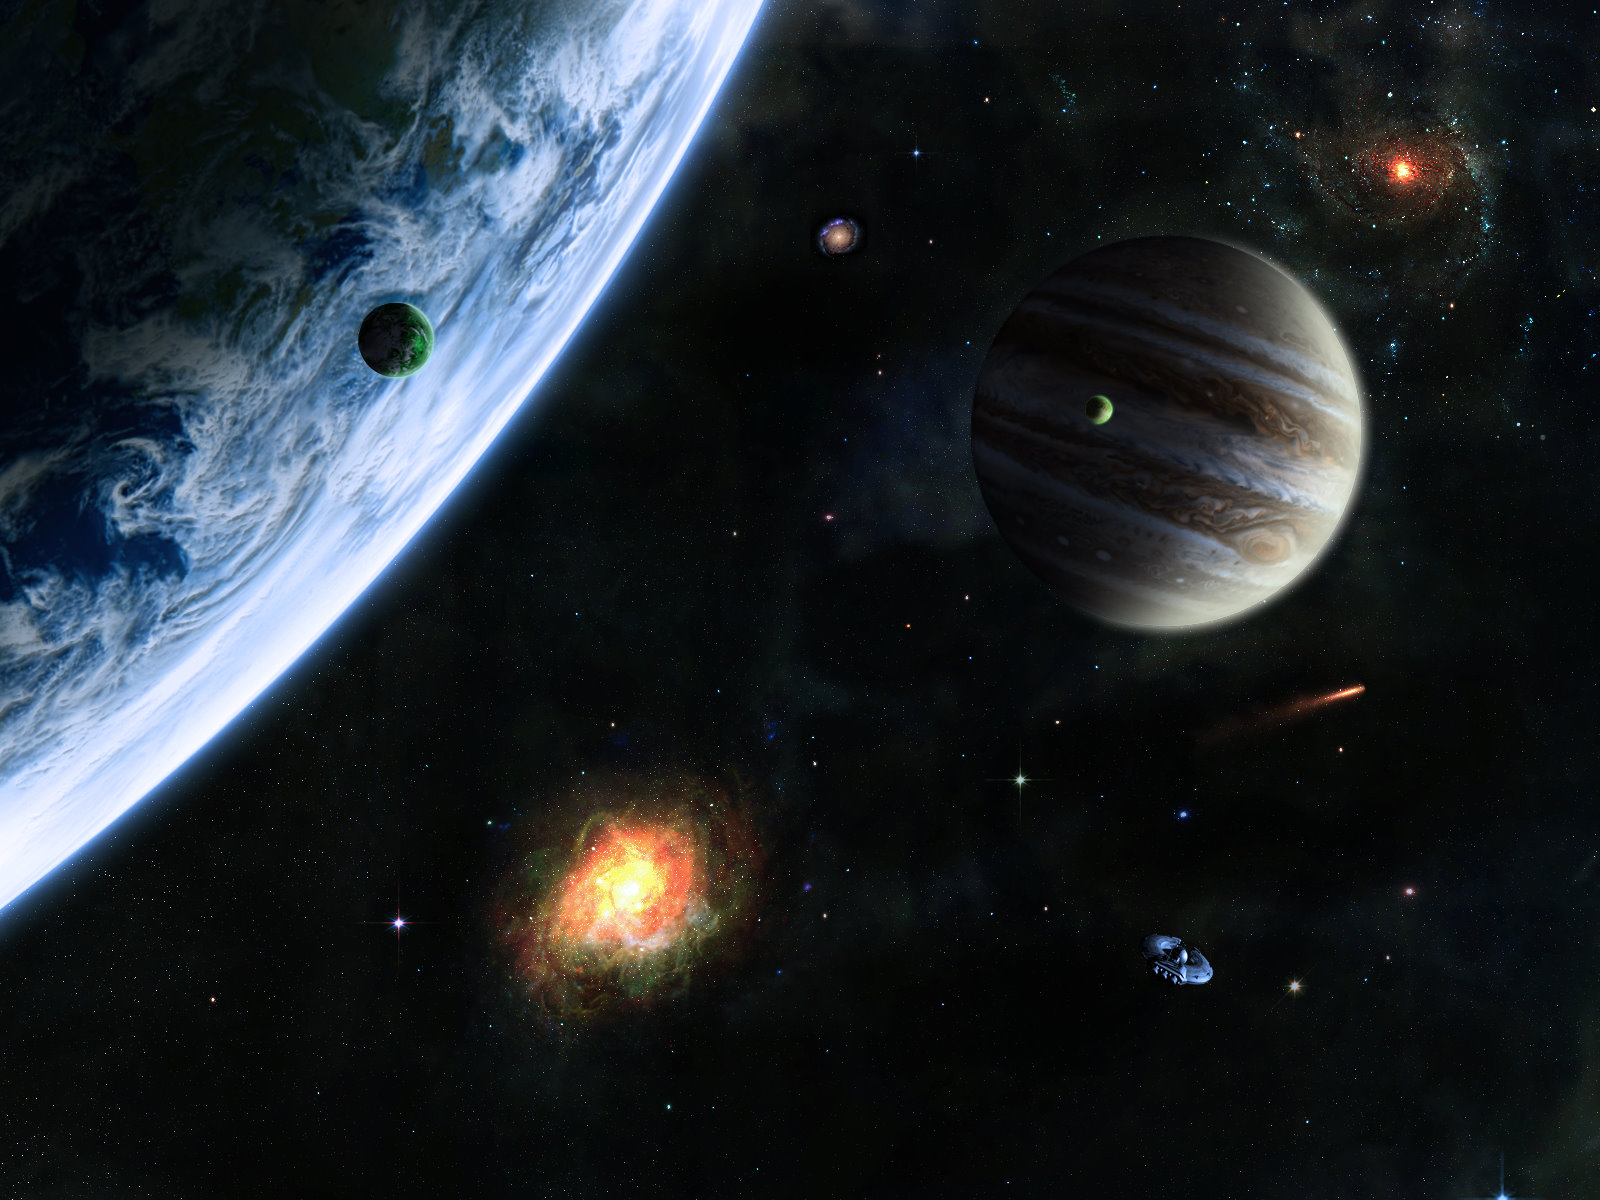 Backgrounds Of Outer Space download on the 1600x1200